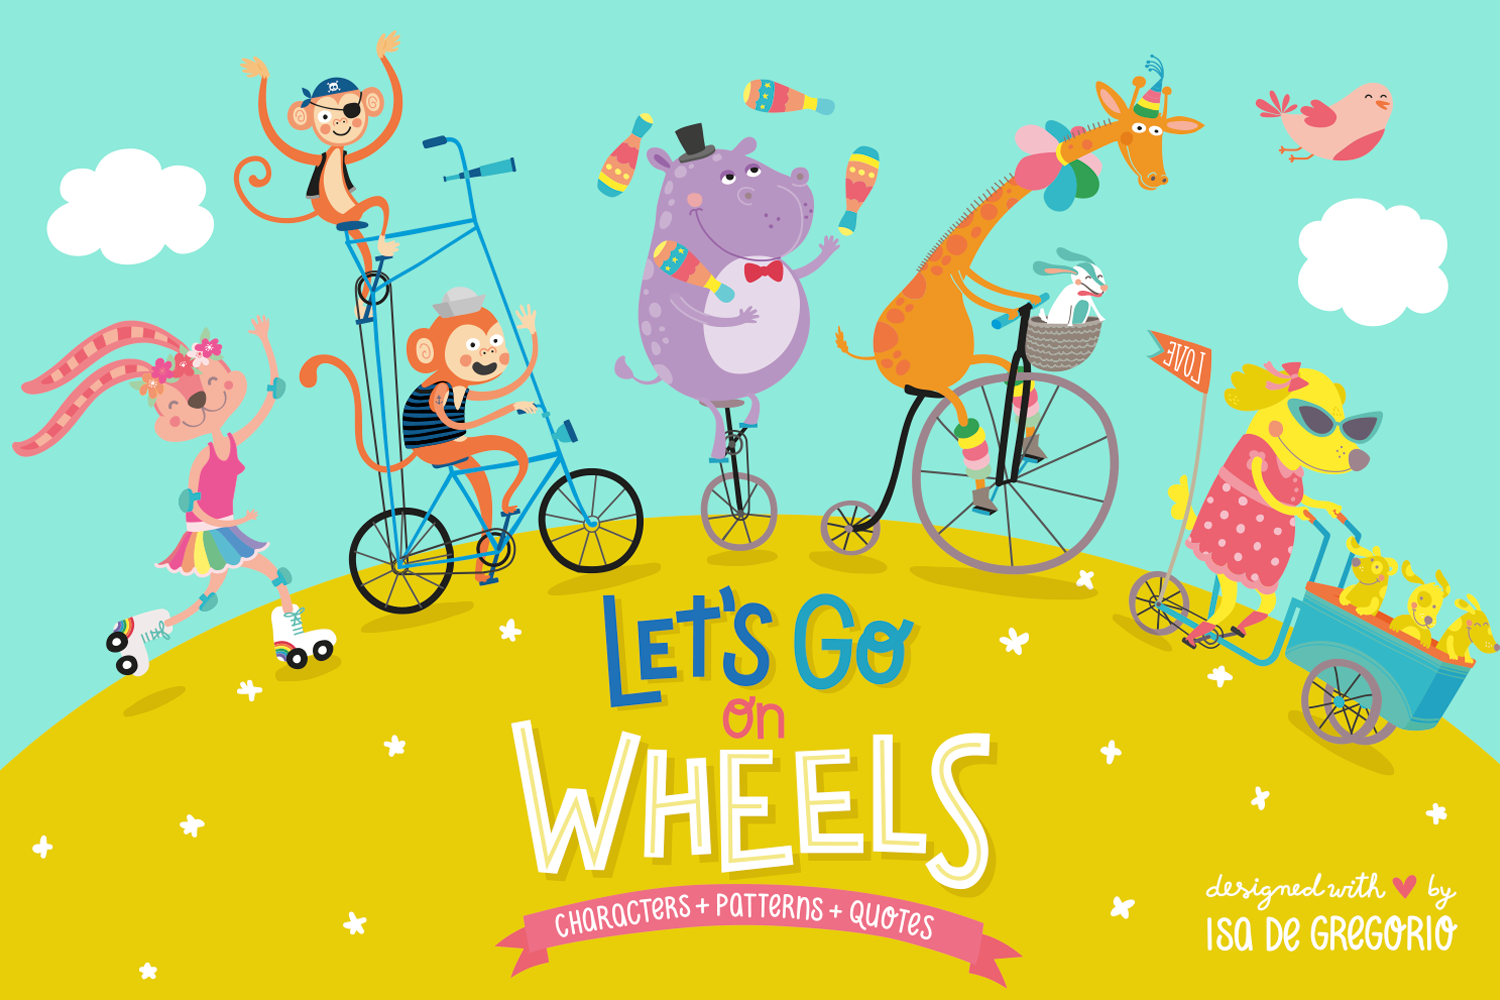 Let's go on Wheels